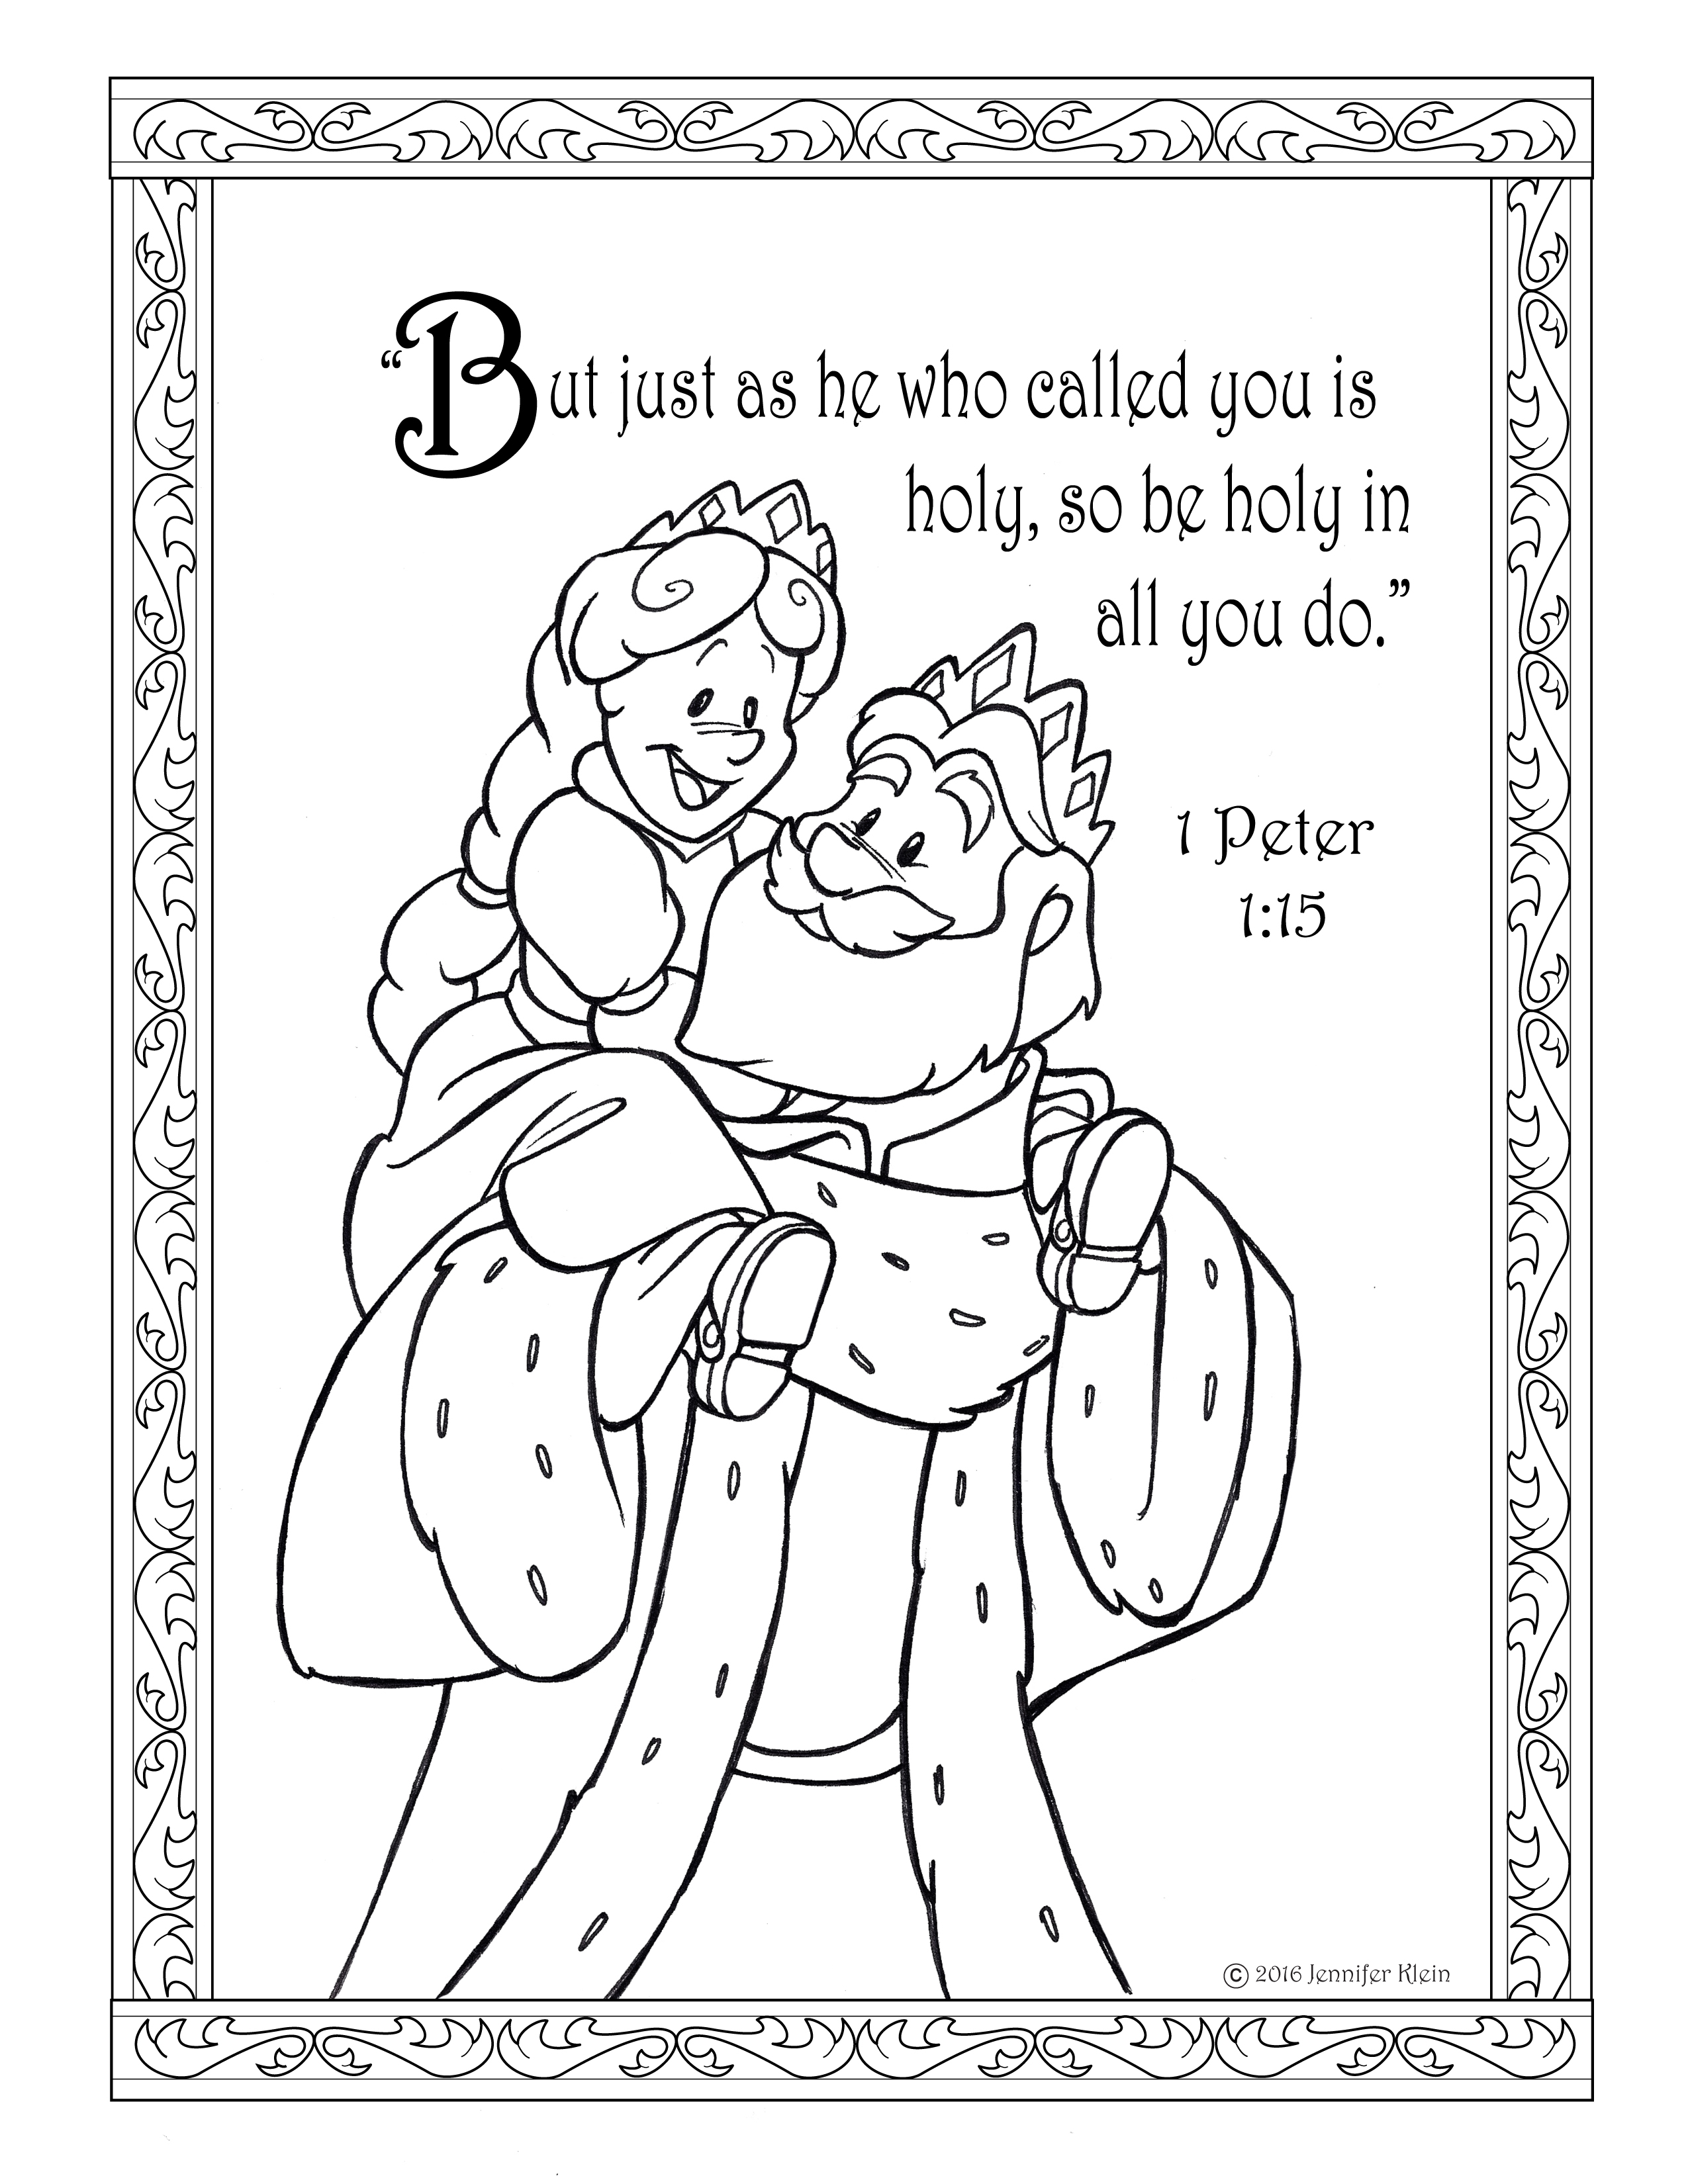 Princess Pristina's Crafts, Coloring & Activity Pages